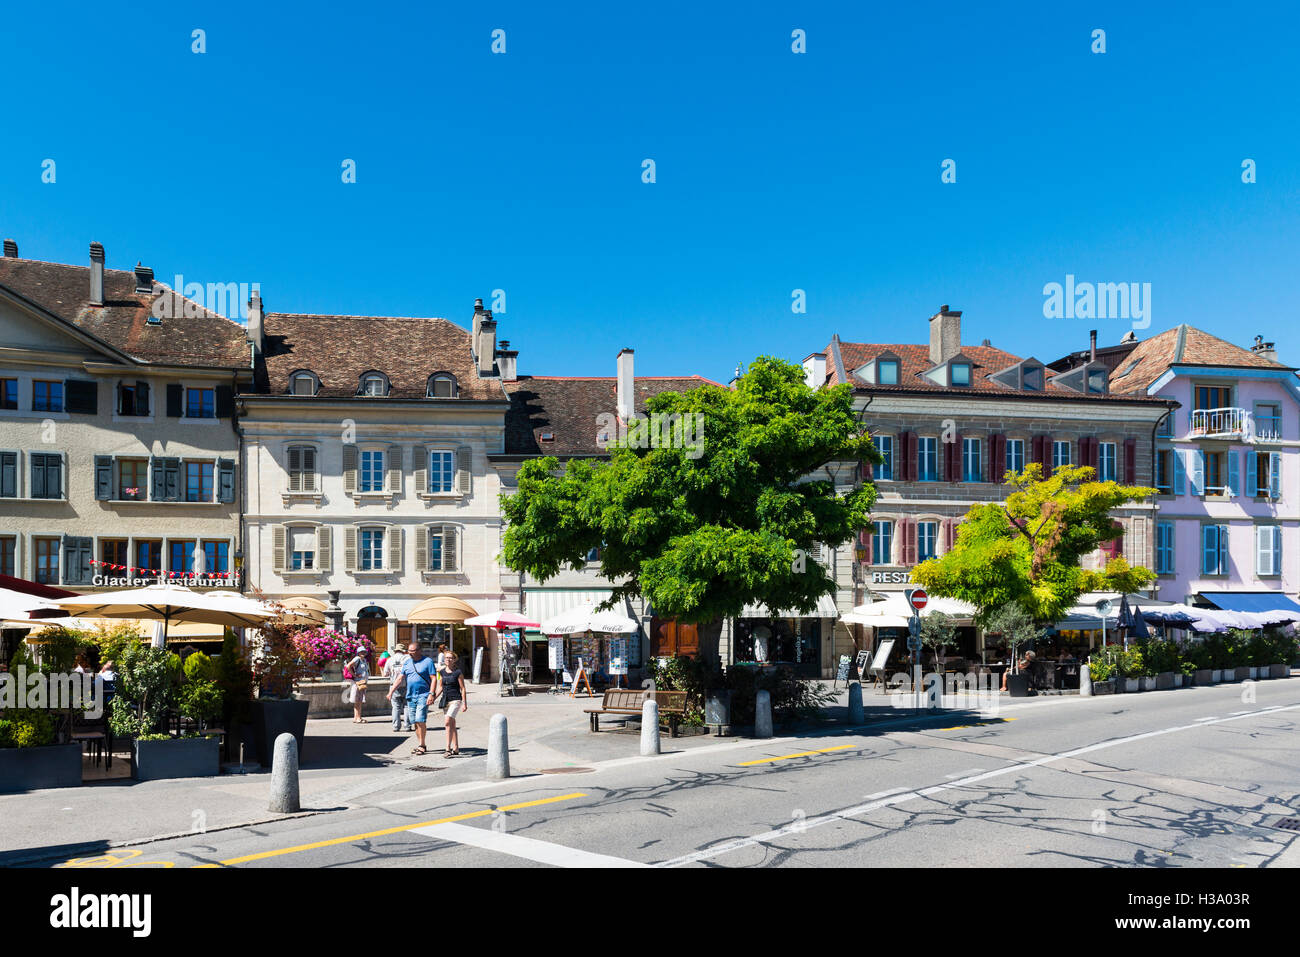 Pedestrian and street restaurants at a town square, Nyon, canton Vaud, Switzerland - Stock Image